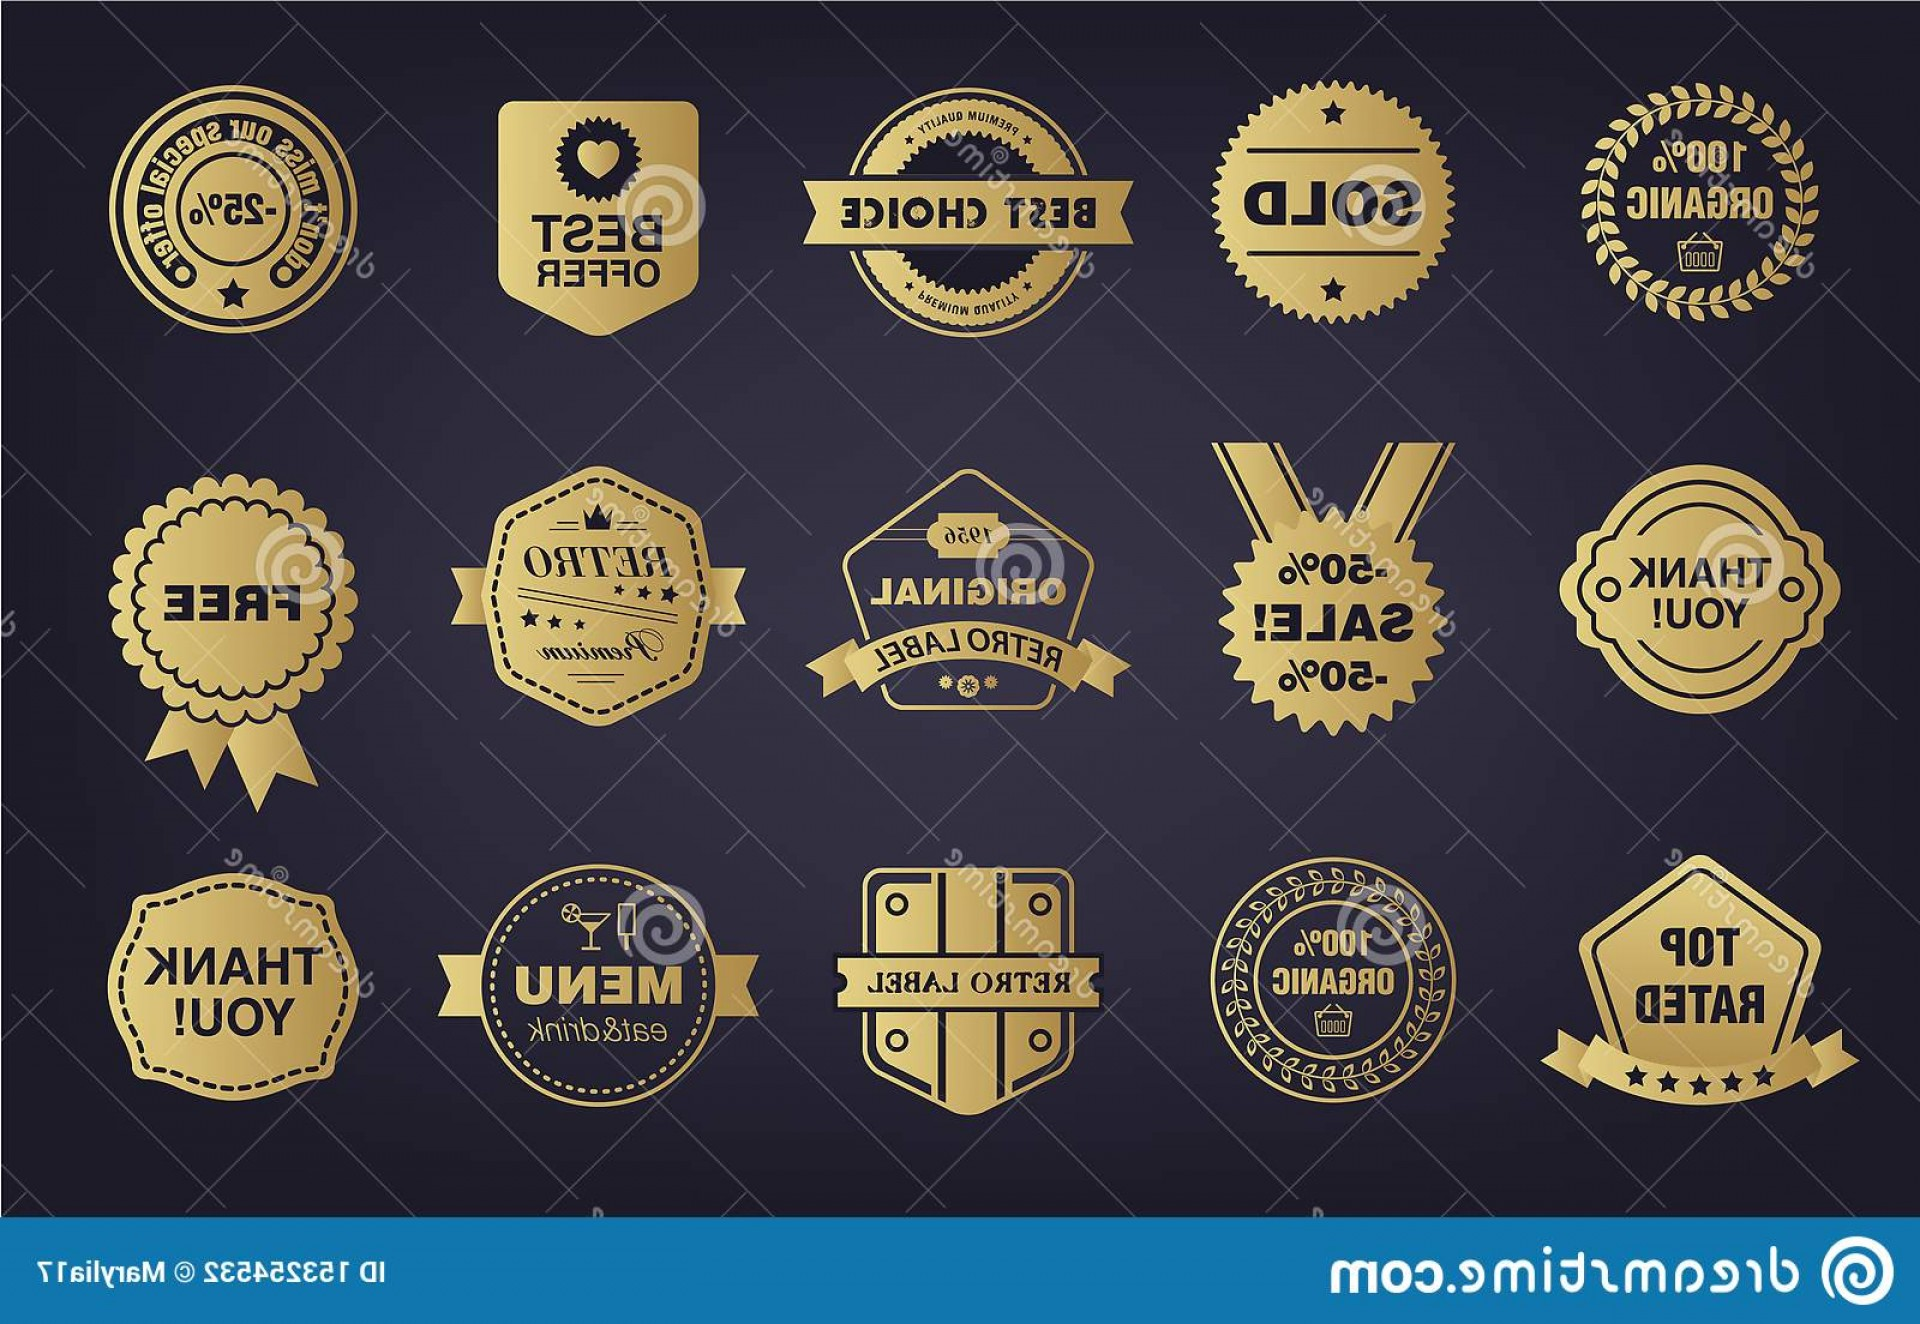 Badge Vector 1920'Sribbon: Vector Set Golden Shop Vintage Retro Badges Labels Tags Store Signs Ribbons Image